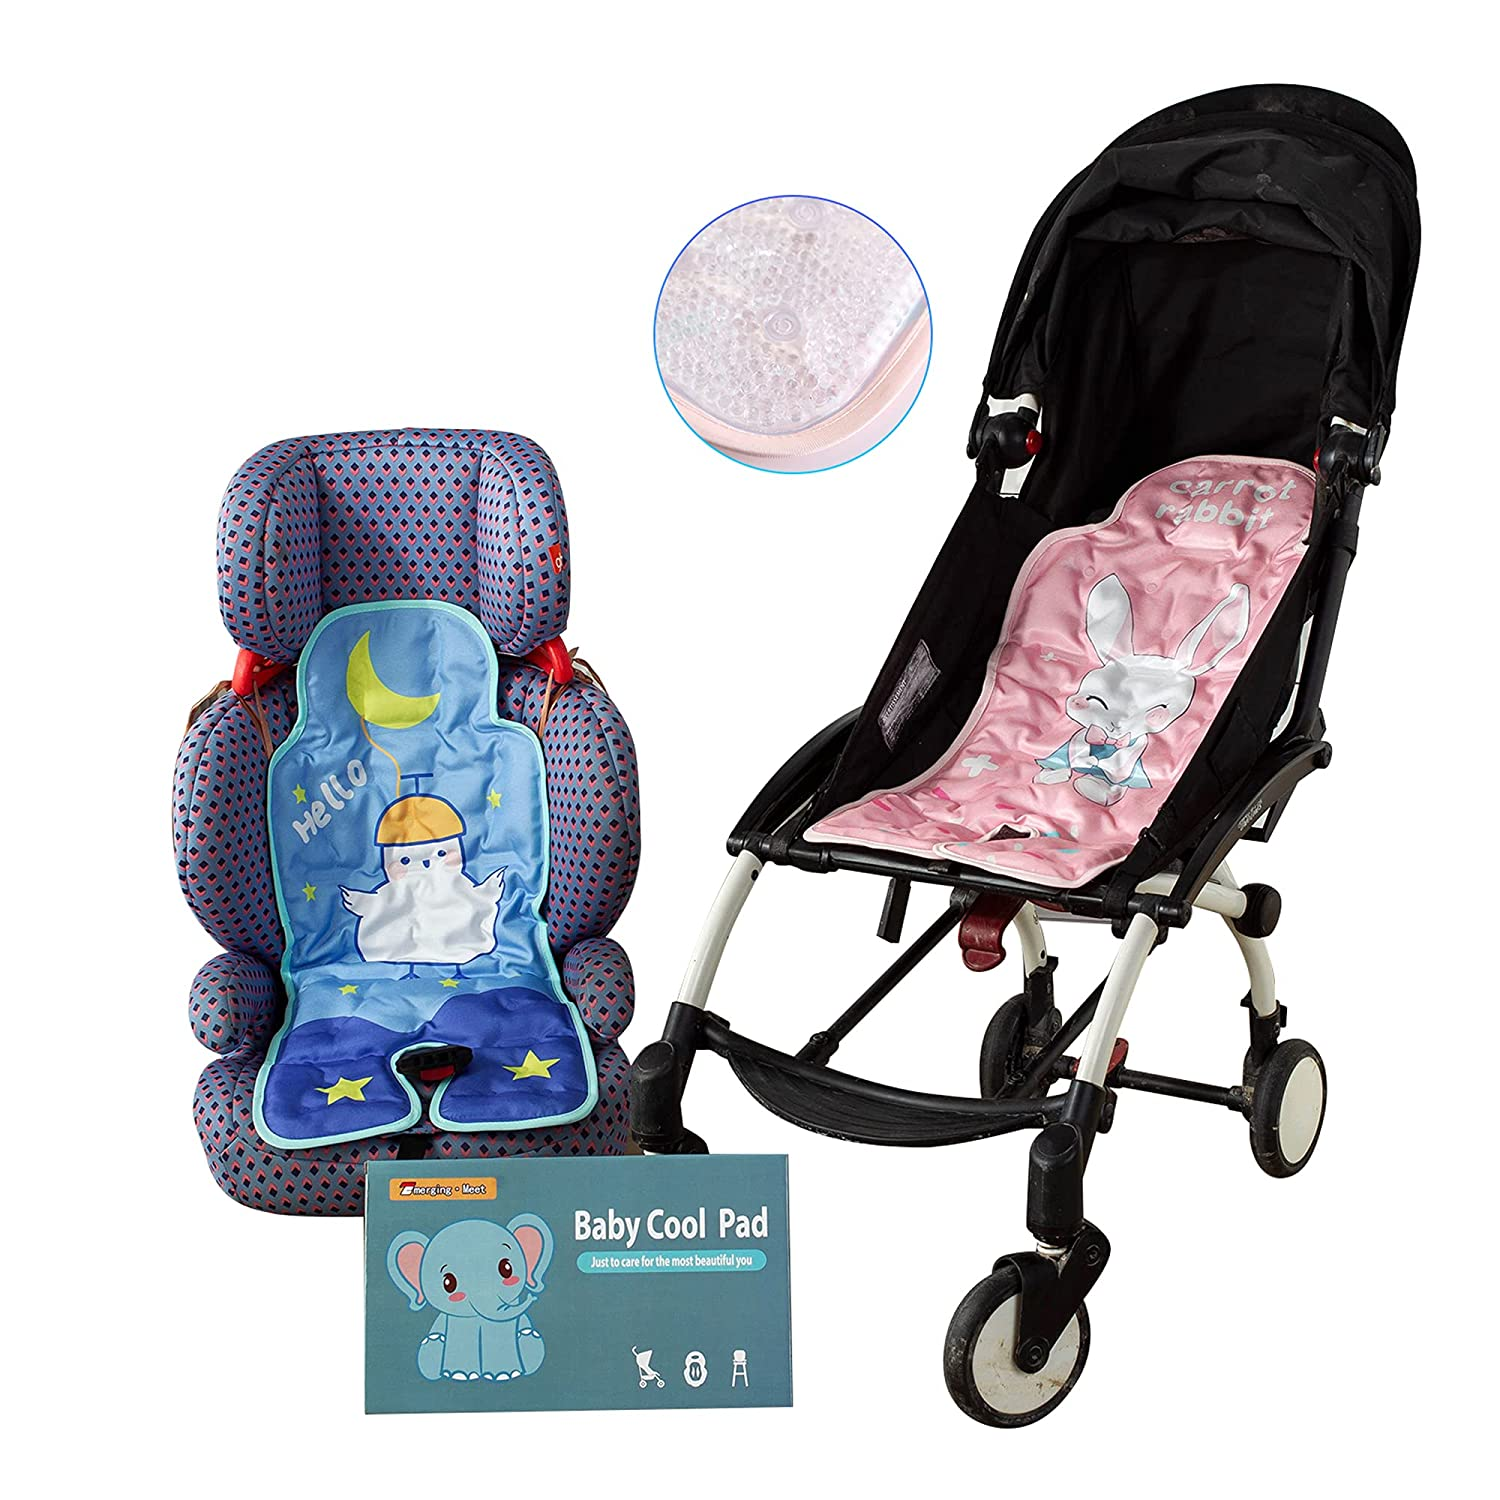 Baby Stroller Cool pad Dining Chair ice Bead Cushion no Need to refrigerate Keep at 25℃ Safety seat Cooling Cushion Lining Support Infants and Toddlers Quick and Easy Installation (Pink)